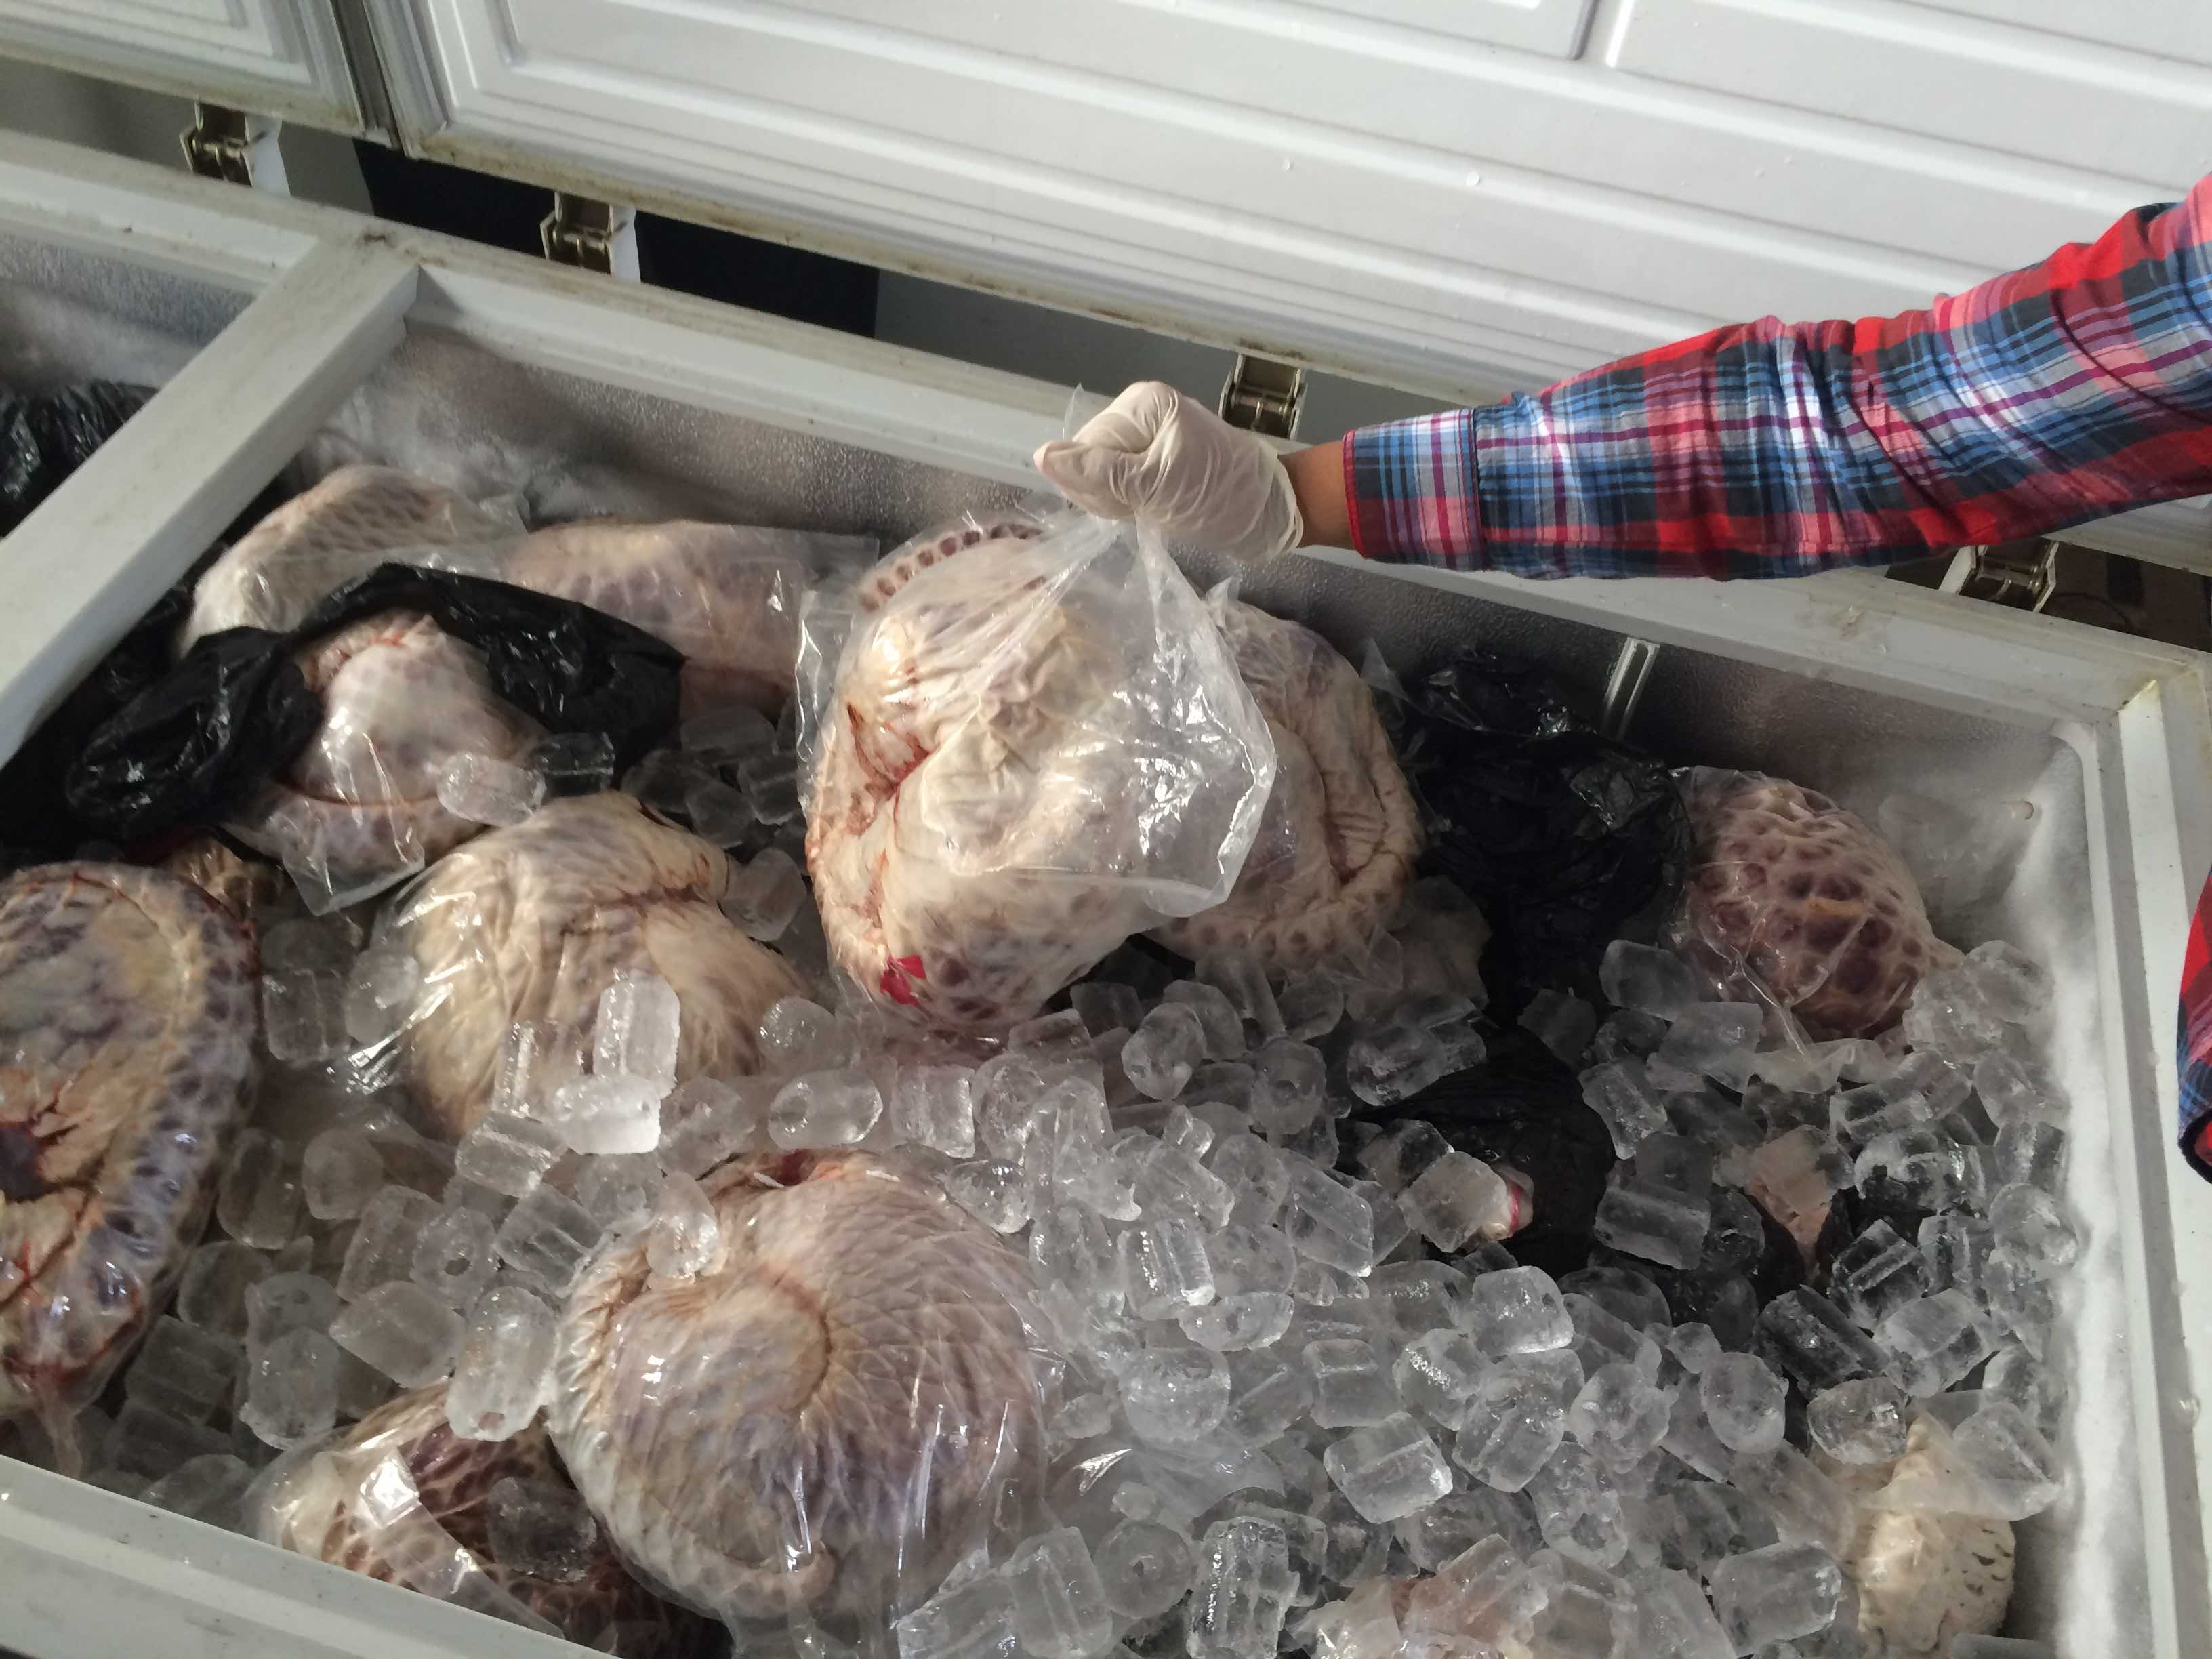 Indonesian authorities have seized 657 pangolins stored in five large freezers, and arrested a 55-year-old man who has been named a suspect. Photo courtesy of Wildlife Conservation Society (WCS).